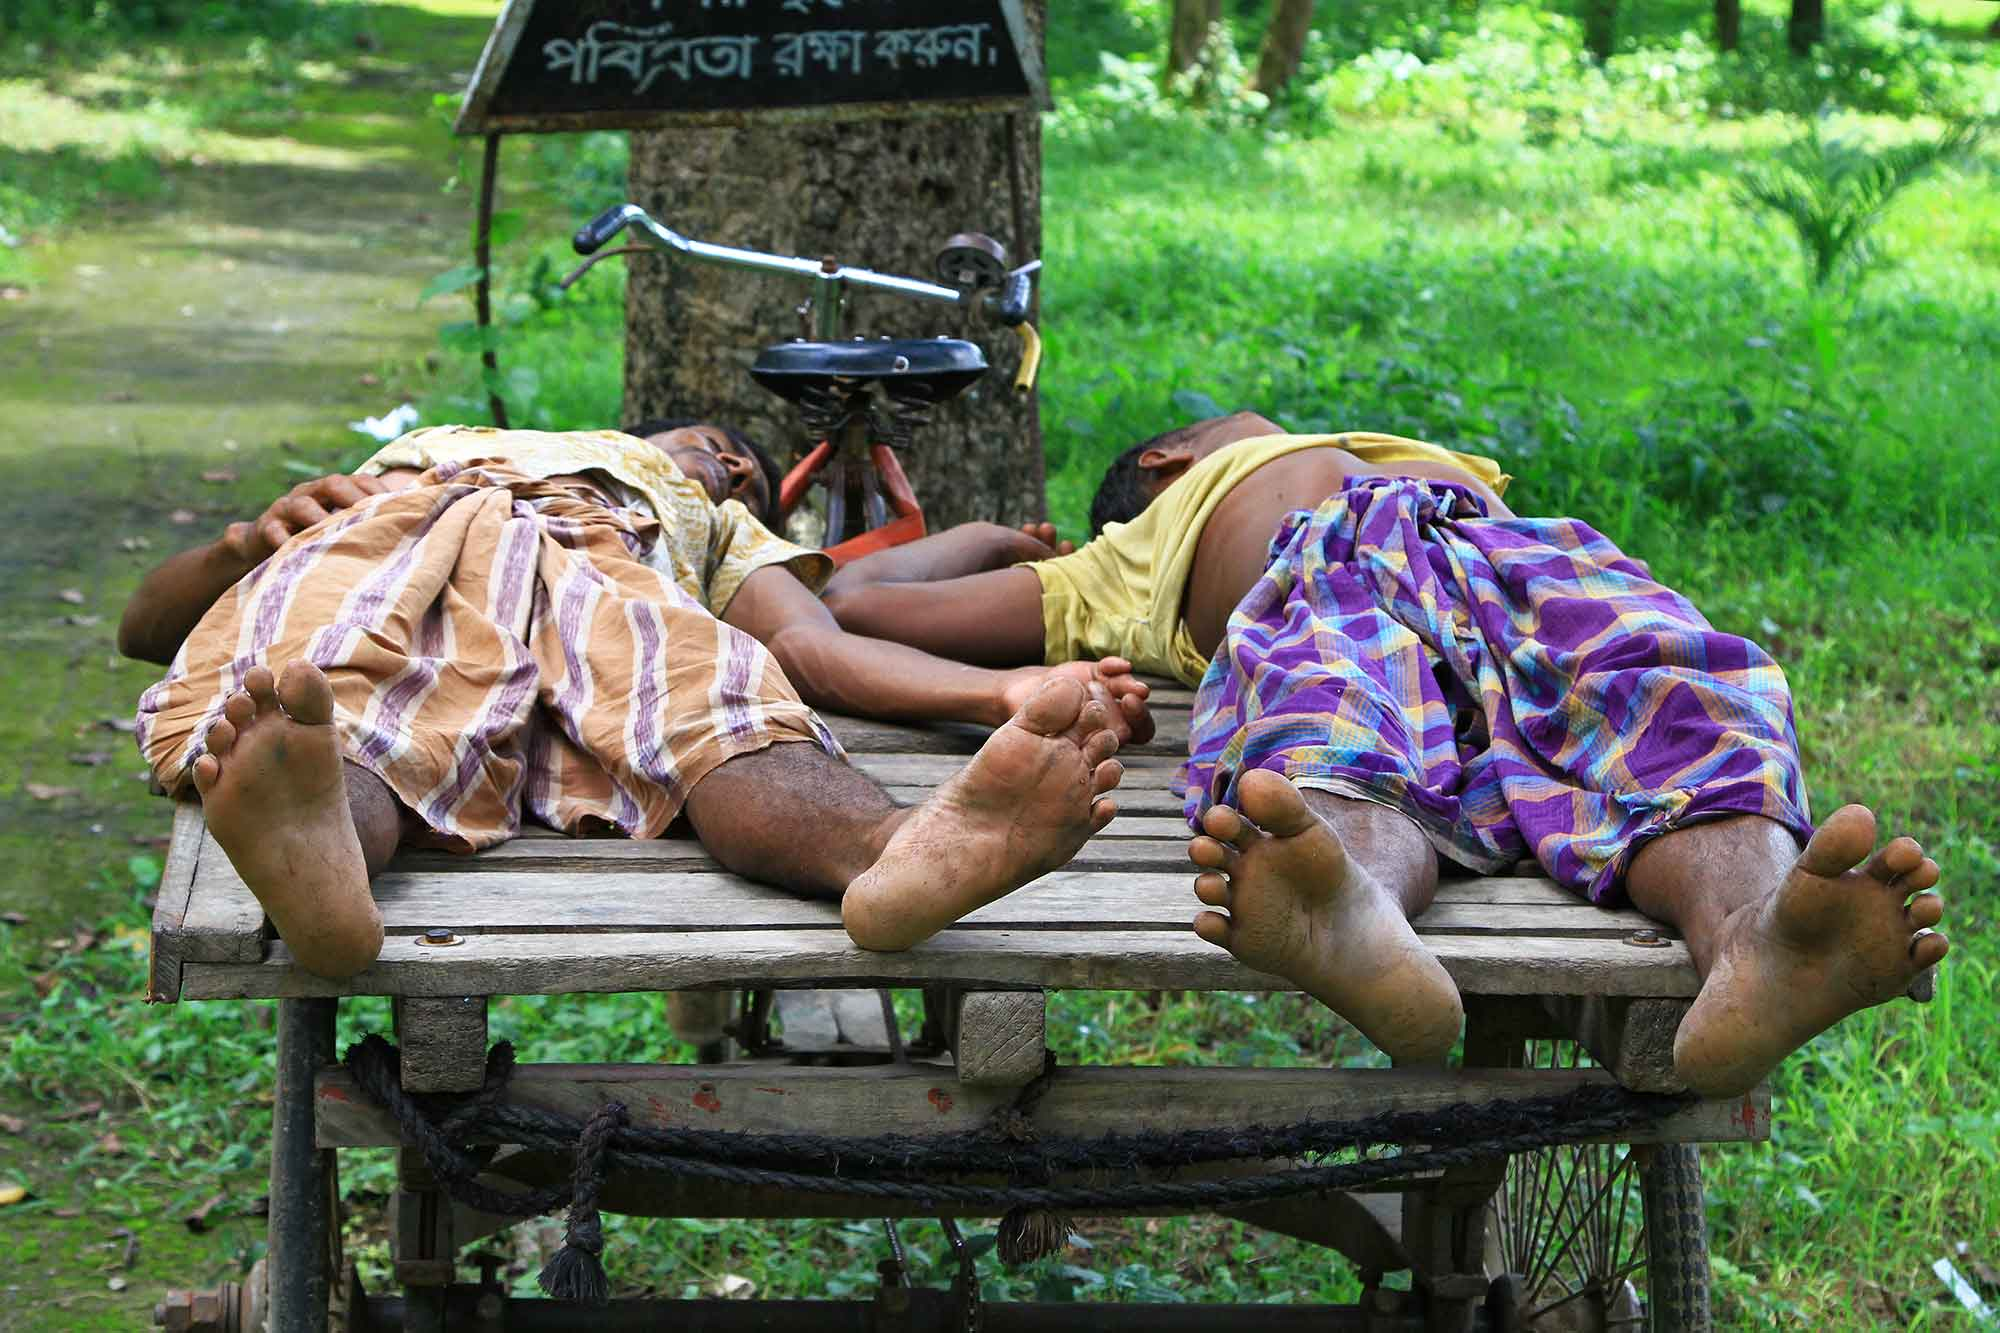 Grave diggers taking a rest at the Christian cemetery in Dhaka. © Ulli Maier & Nisa Maier